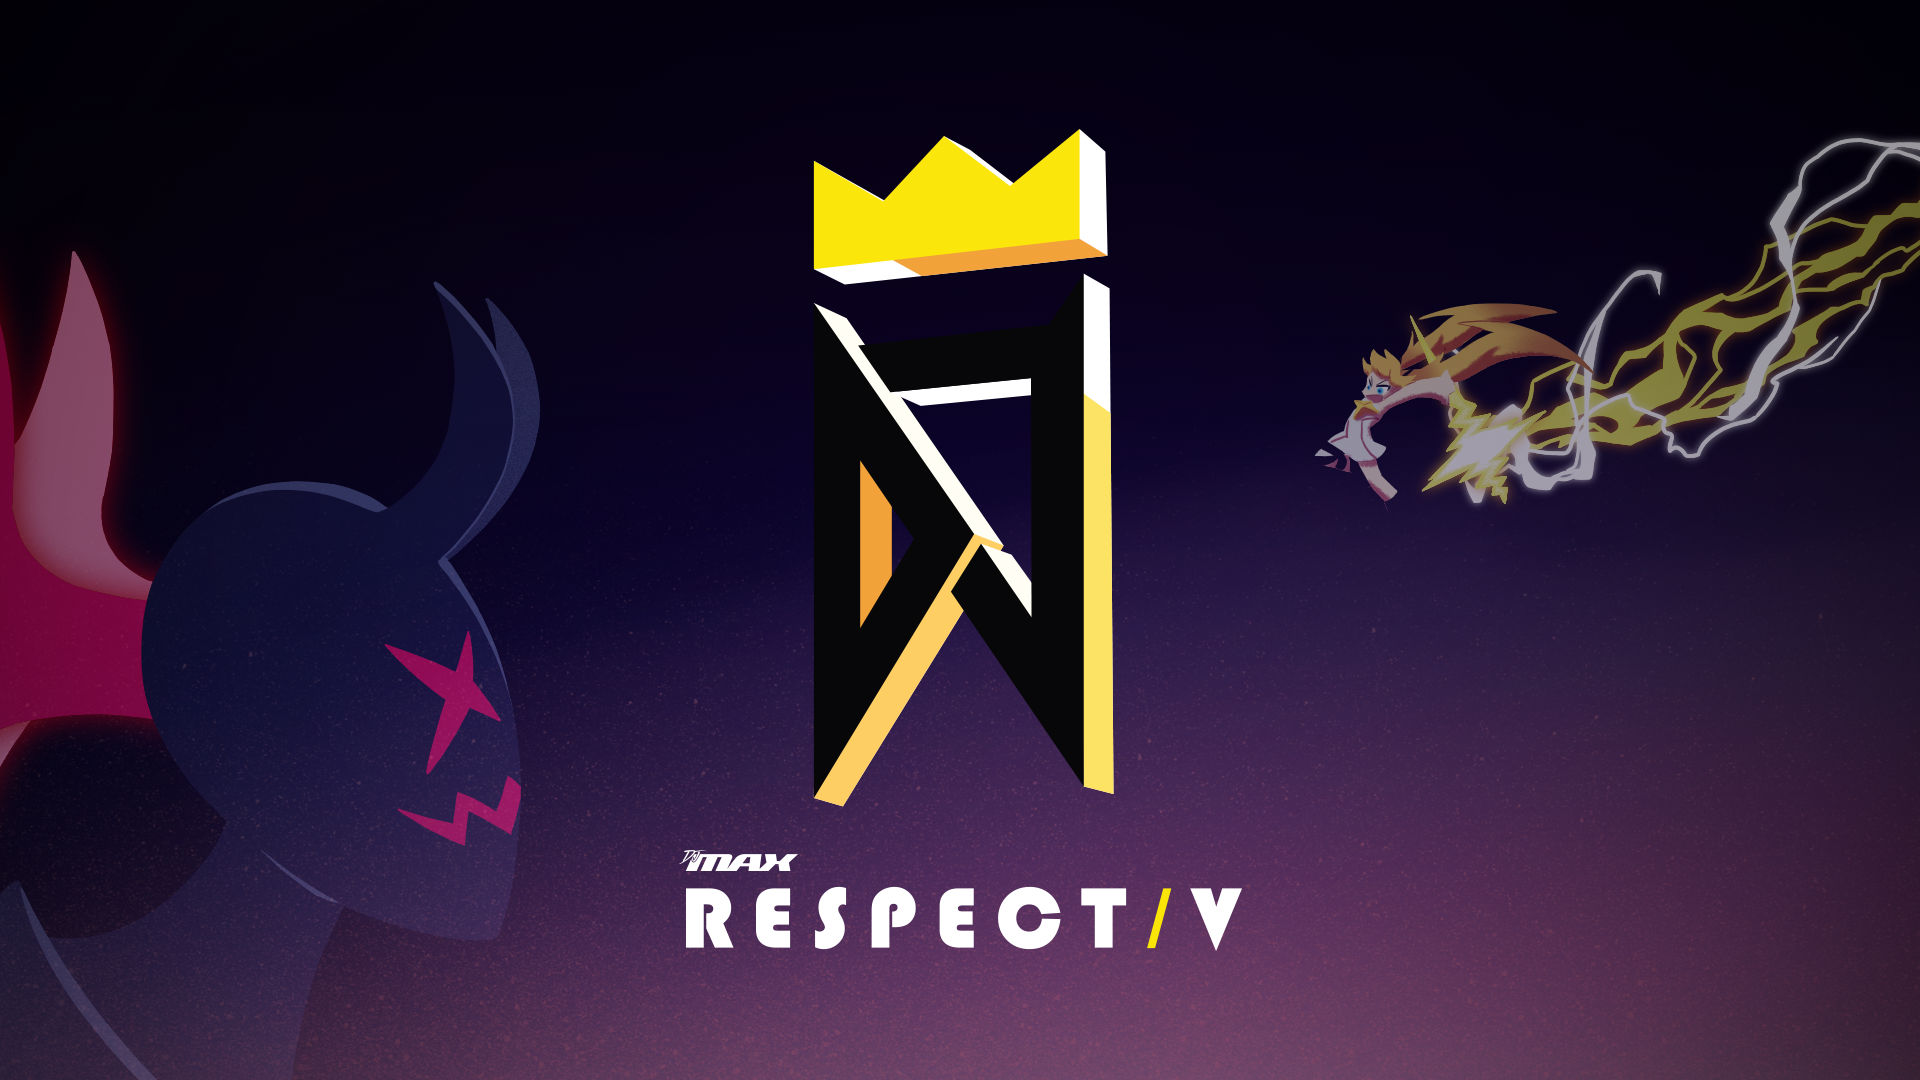 Exclusive: DJMax Respect V is hitting PC Early Access soon, and it'll add League of Legends tracks